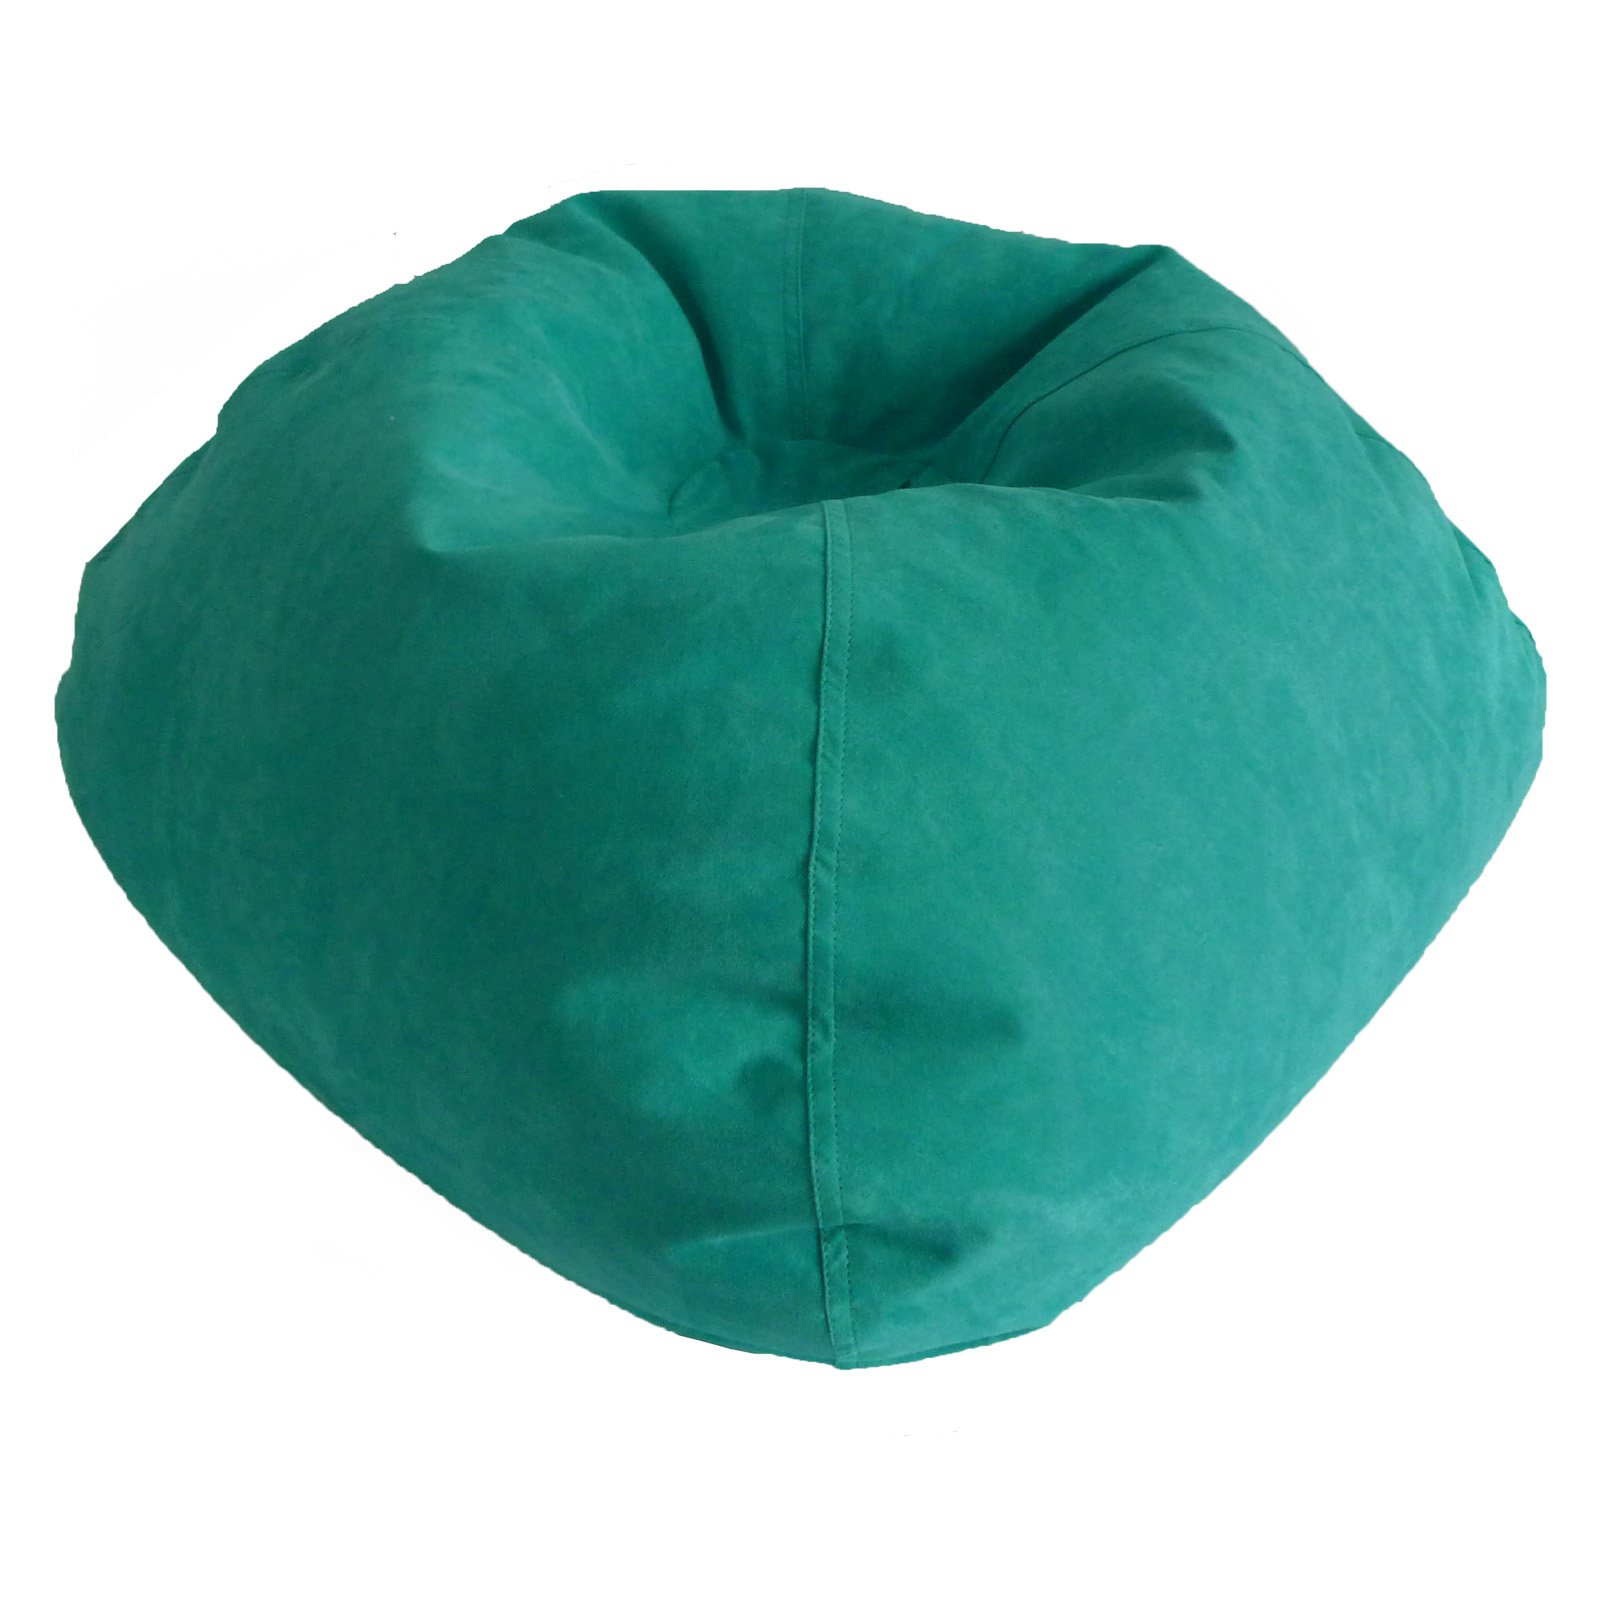 sc 1 st  Walmart & Large Microsuede Bean Bag Available in Multiple Colors - Walmart.com